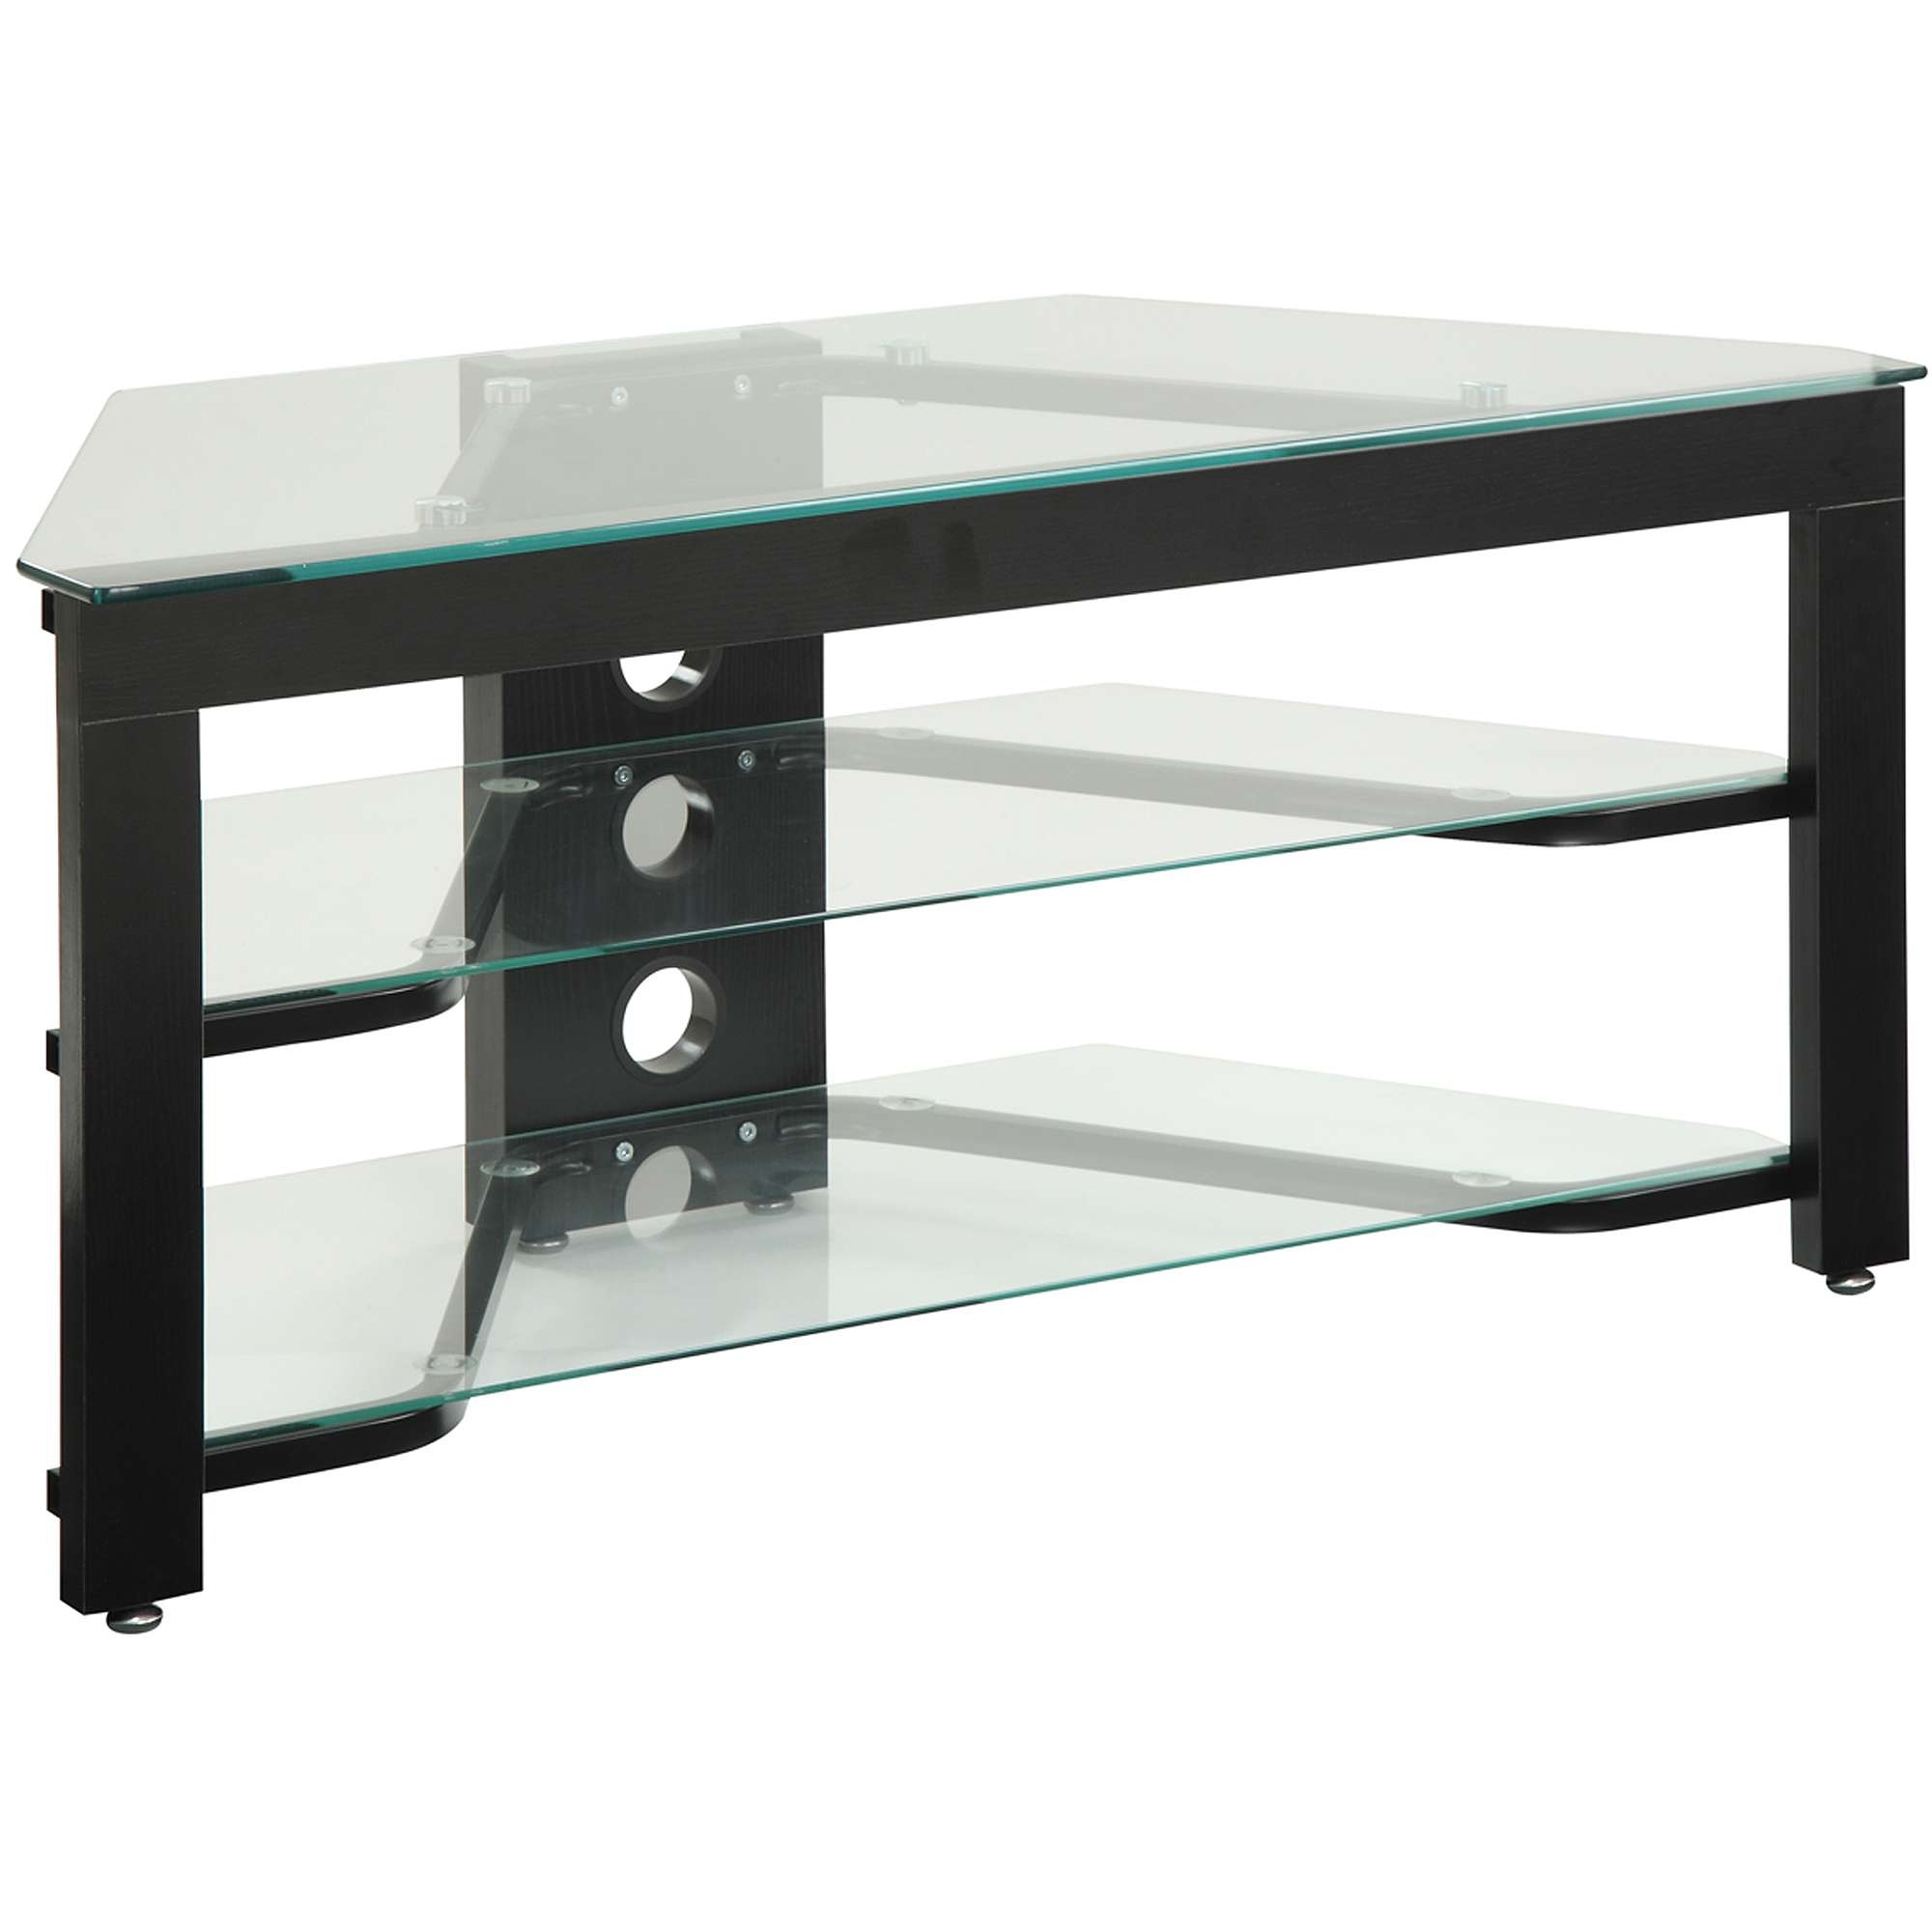 Tv : Product Amazing Glass Tv Cabinets Contemporary Tv Wall Unit Inside Glass Tv Cabinets (View 2 of 20)